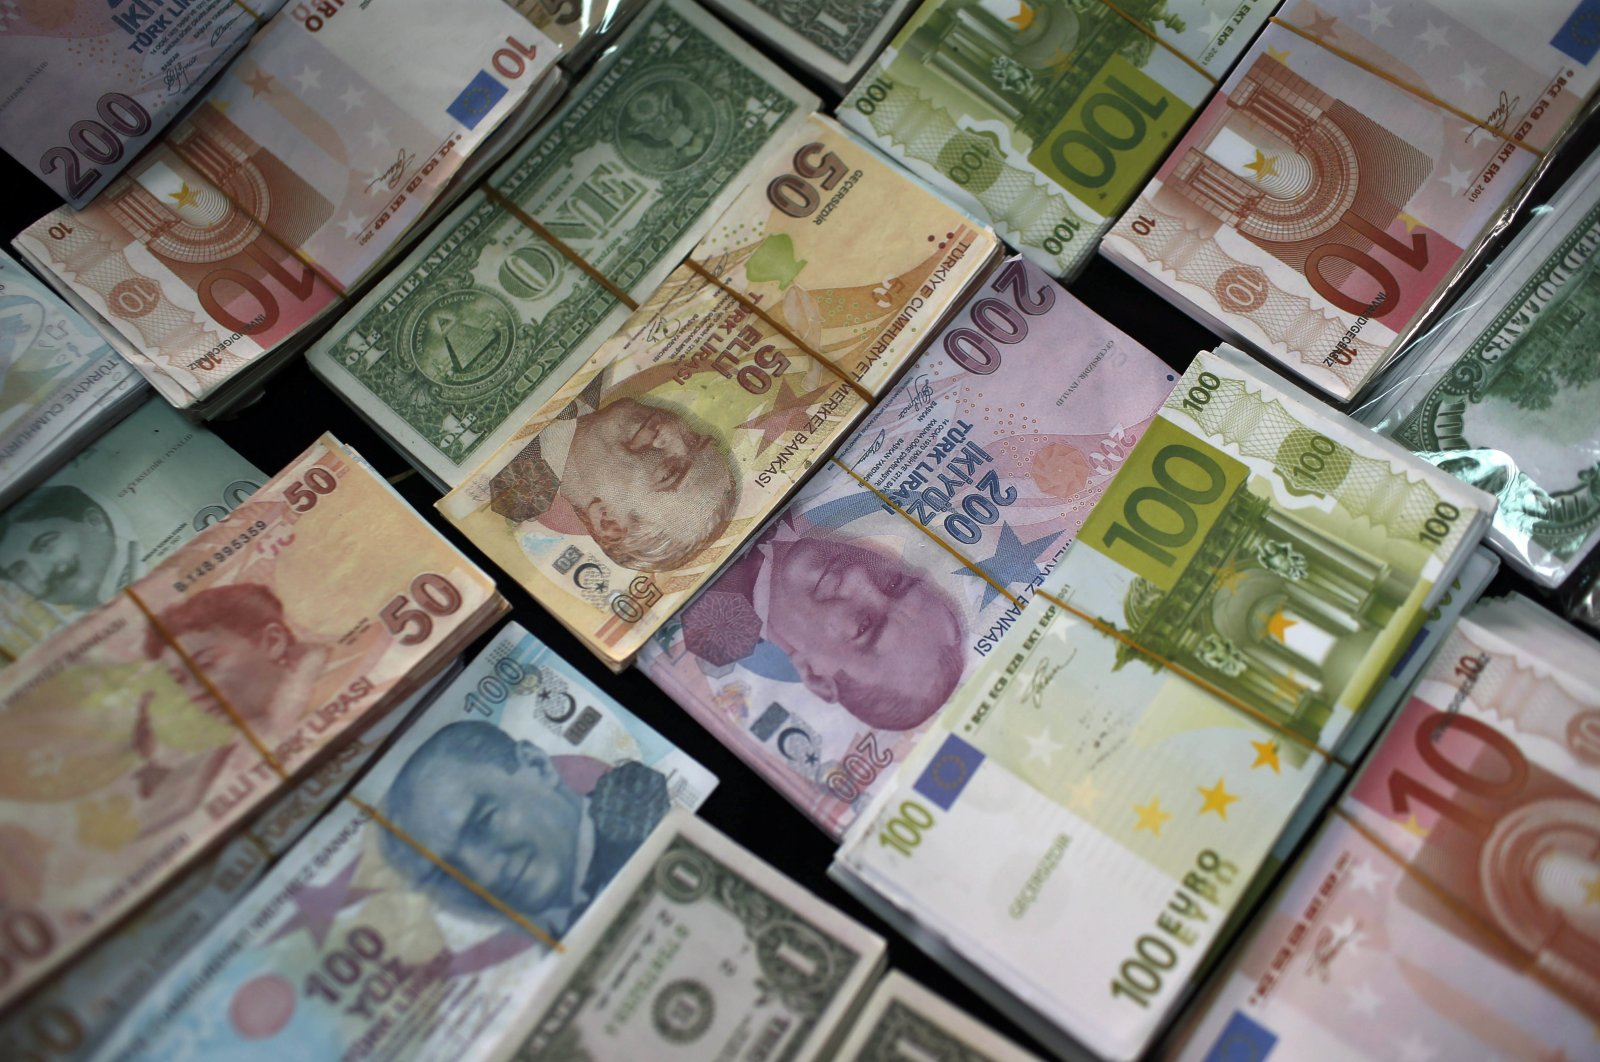 Turkish liras, euros and U.S. dollars are stacked at a currency exchange office in Istanbul, Turkey, June 8, 2015. (AP File Photo)